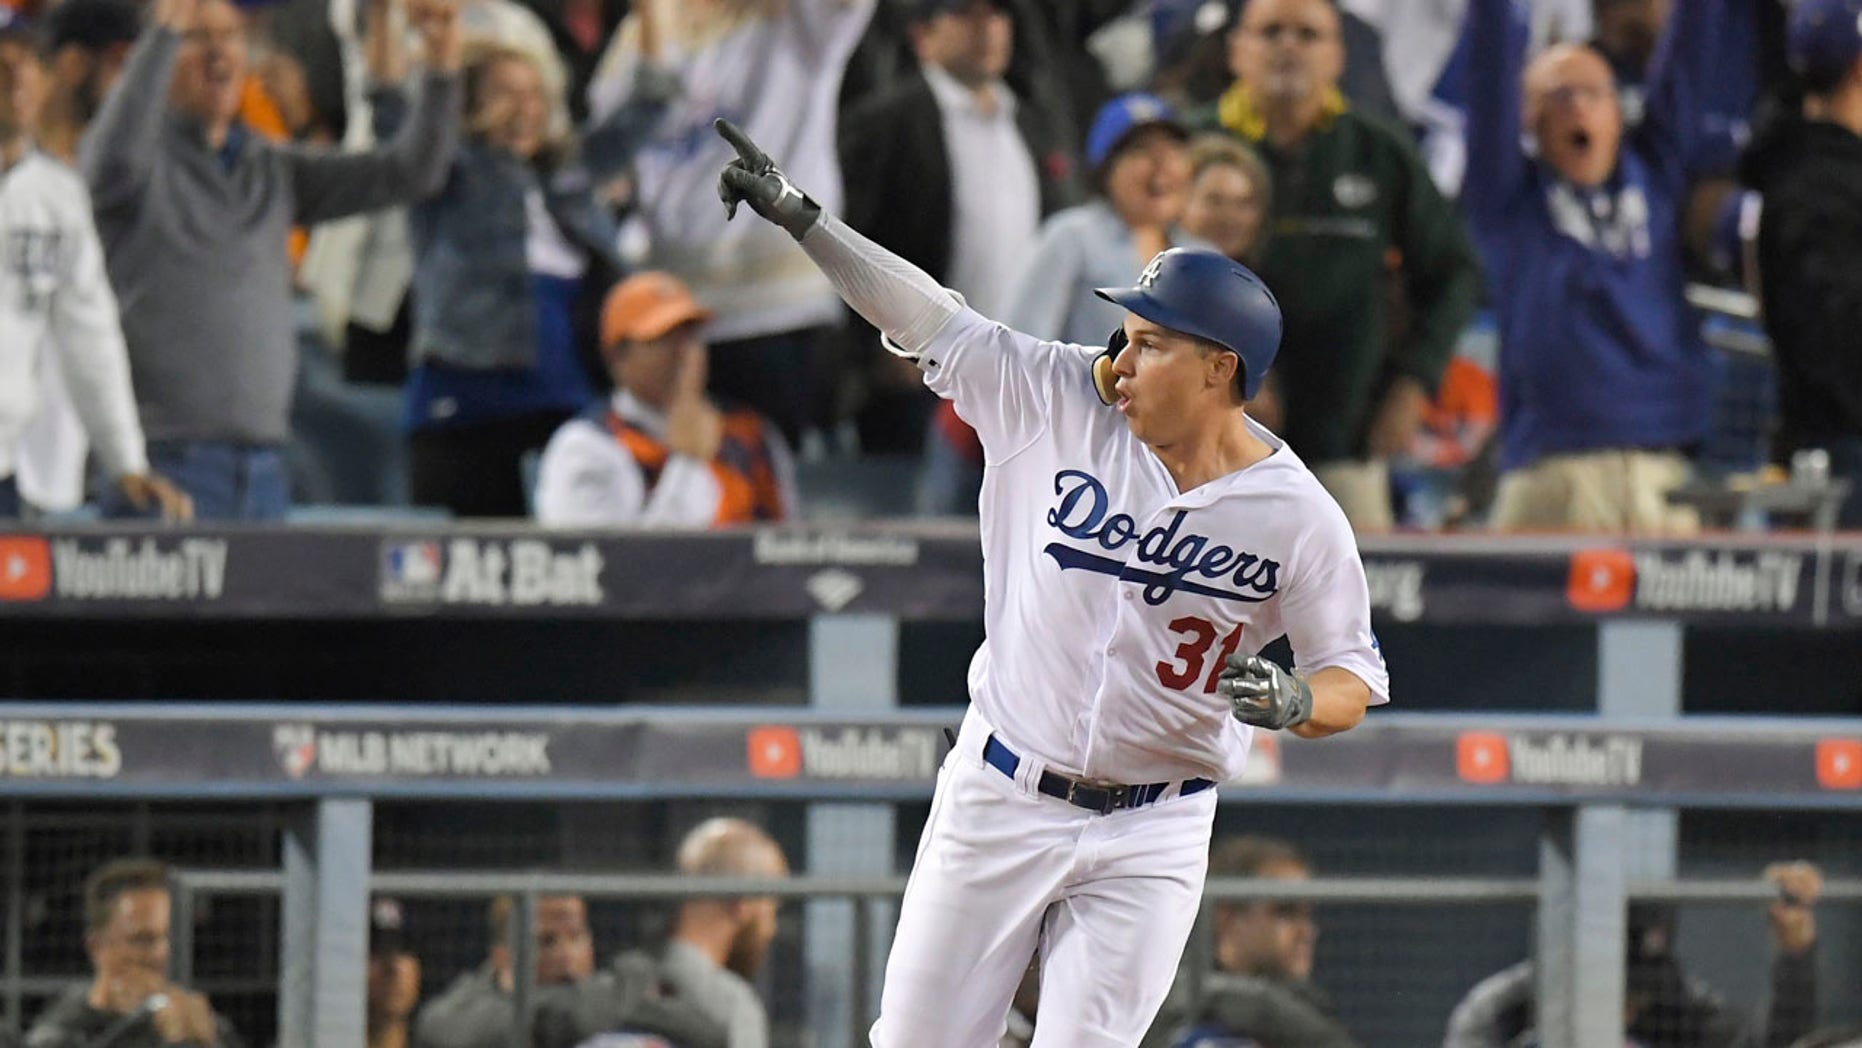 Los Angeles Dodgers' Joc Pederson celebrates his home run off against the Houston Astros during the seventh inning of Game 6 of baseball's World Series Tuesday, Oct. 31, 2017, in Los Angeles